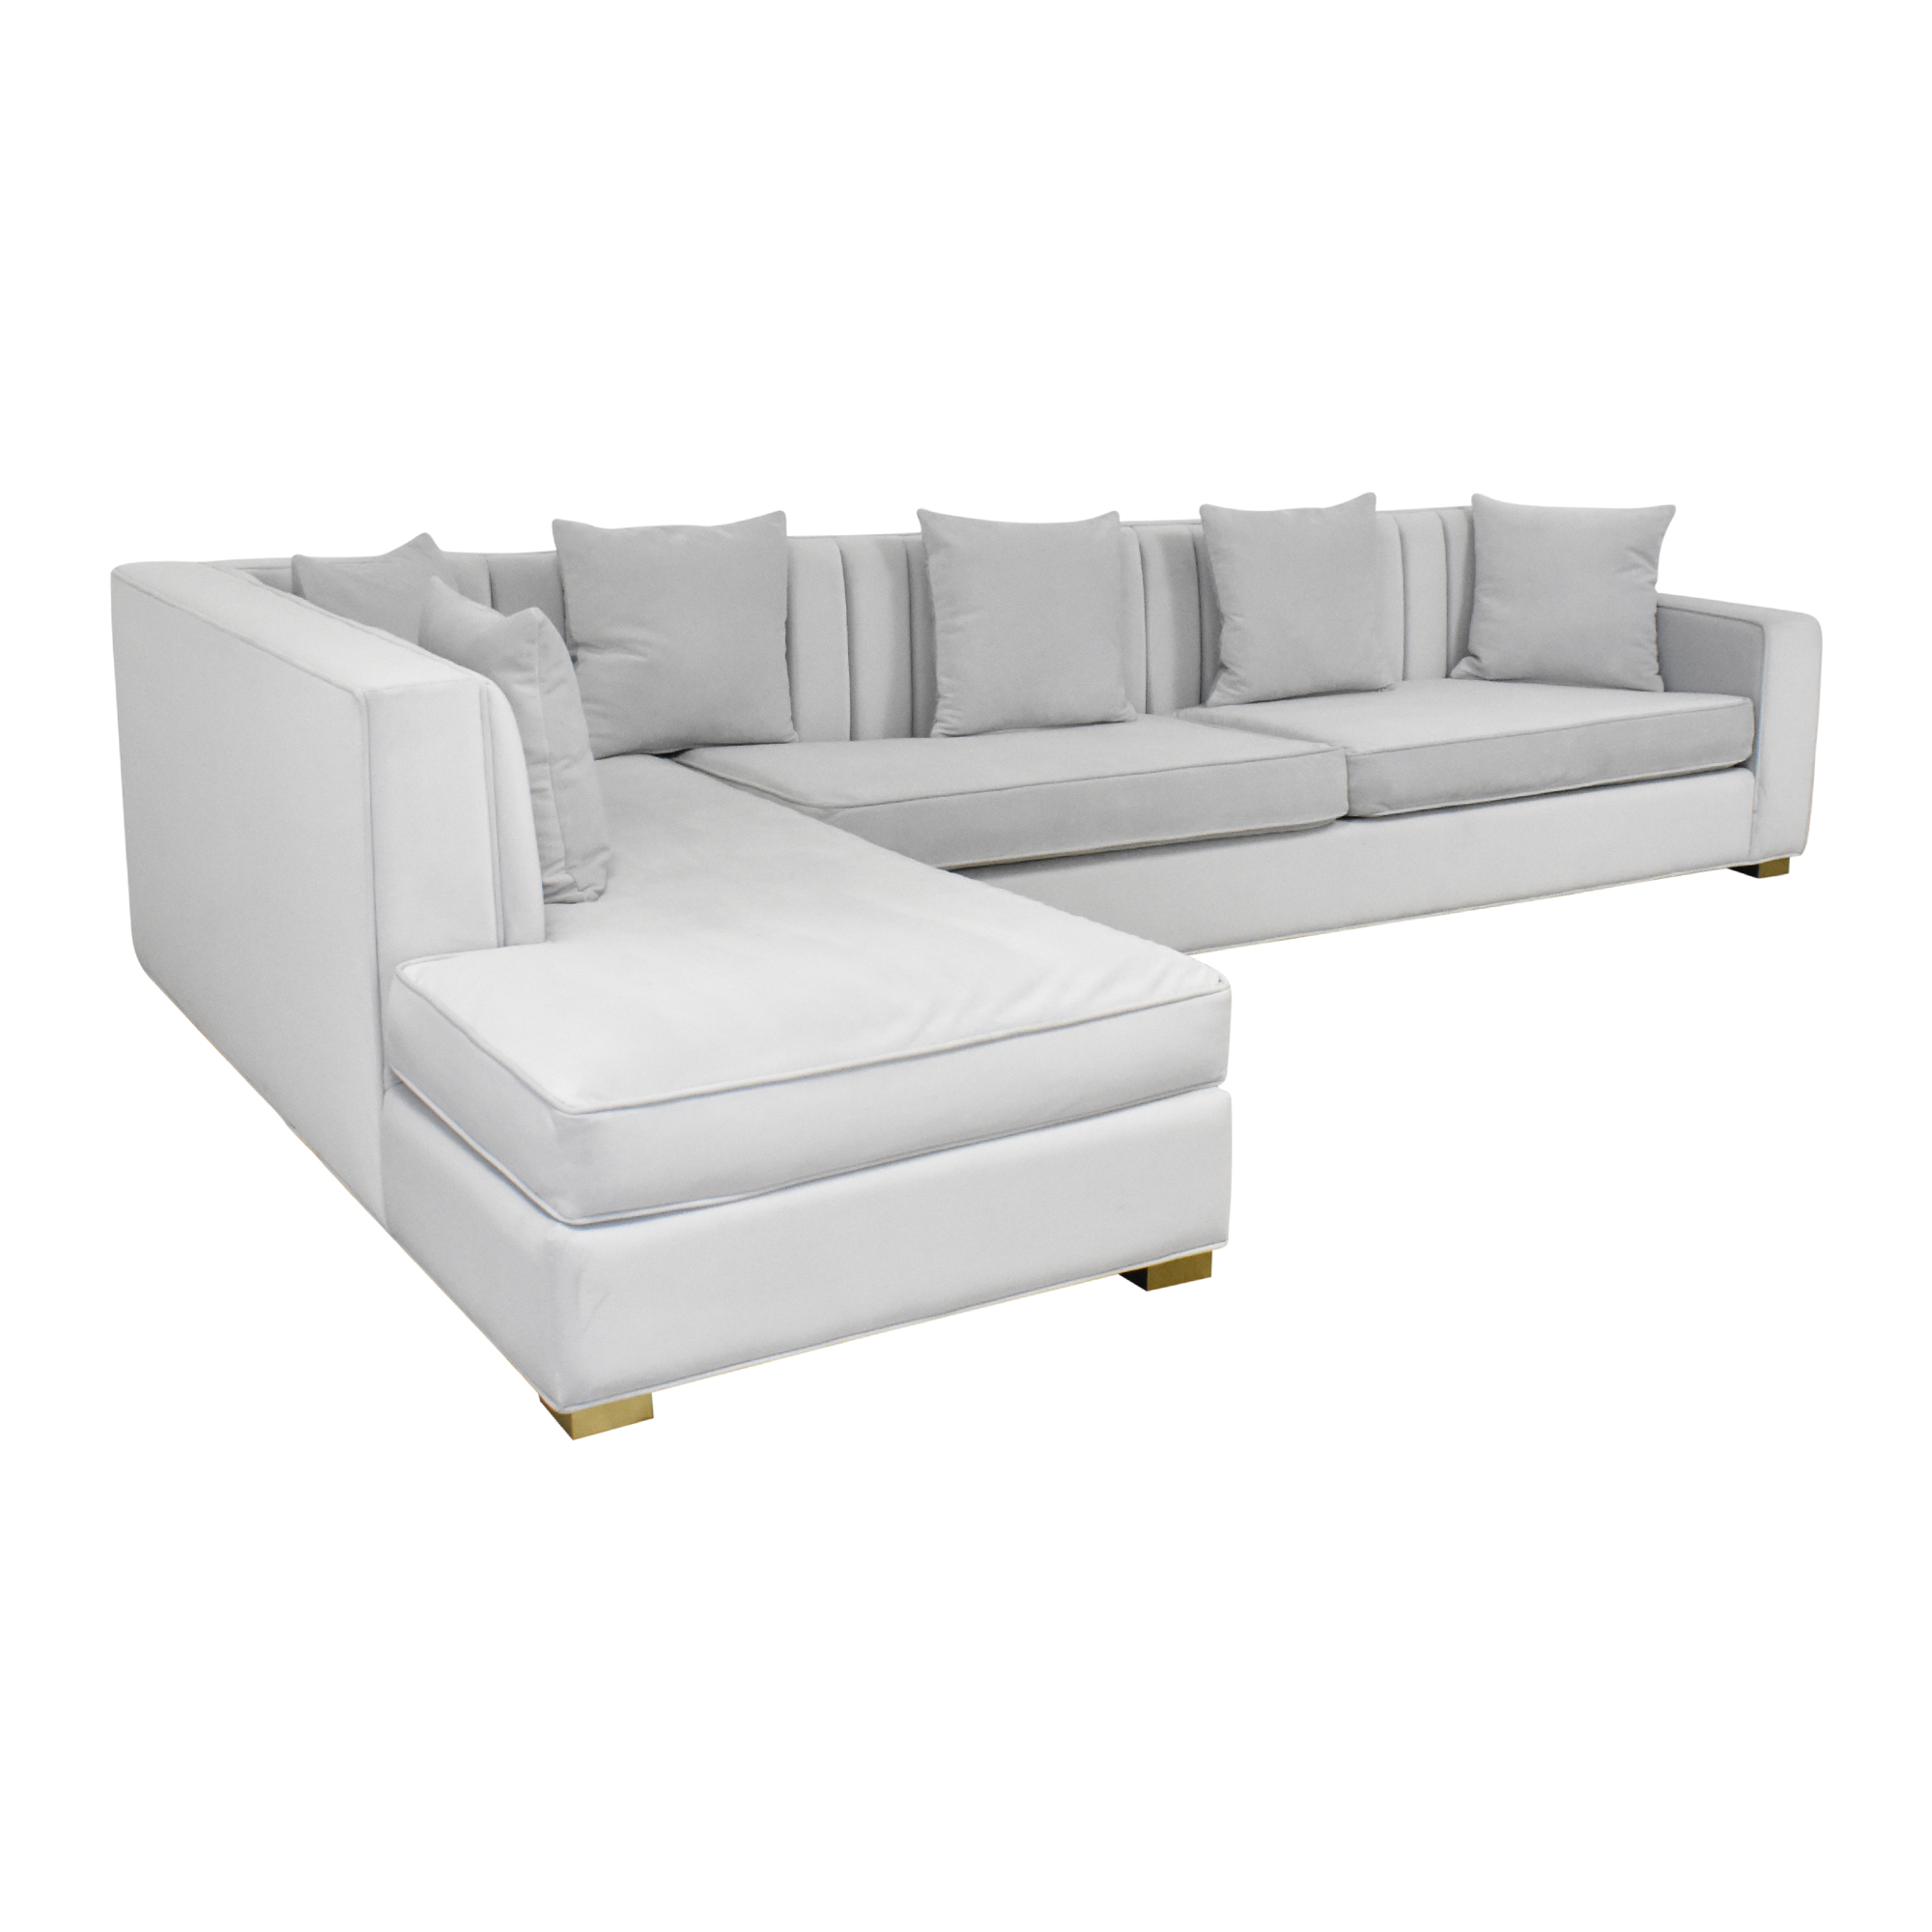 ModShop ModShop Sectional Sofa with Chaise for sale